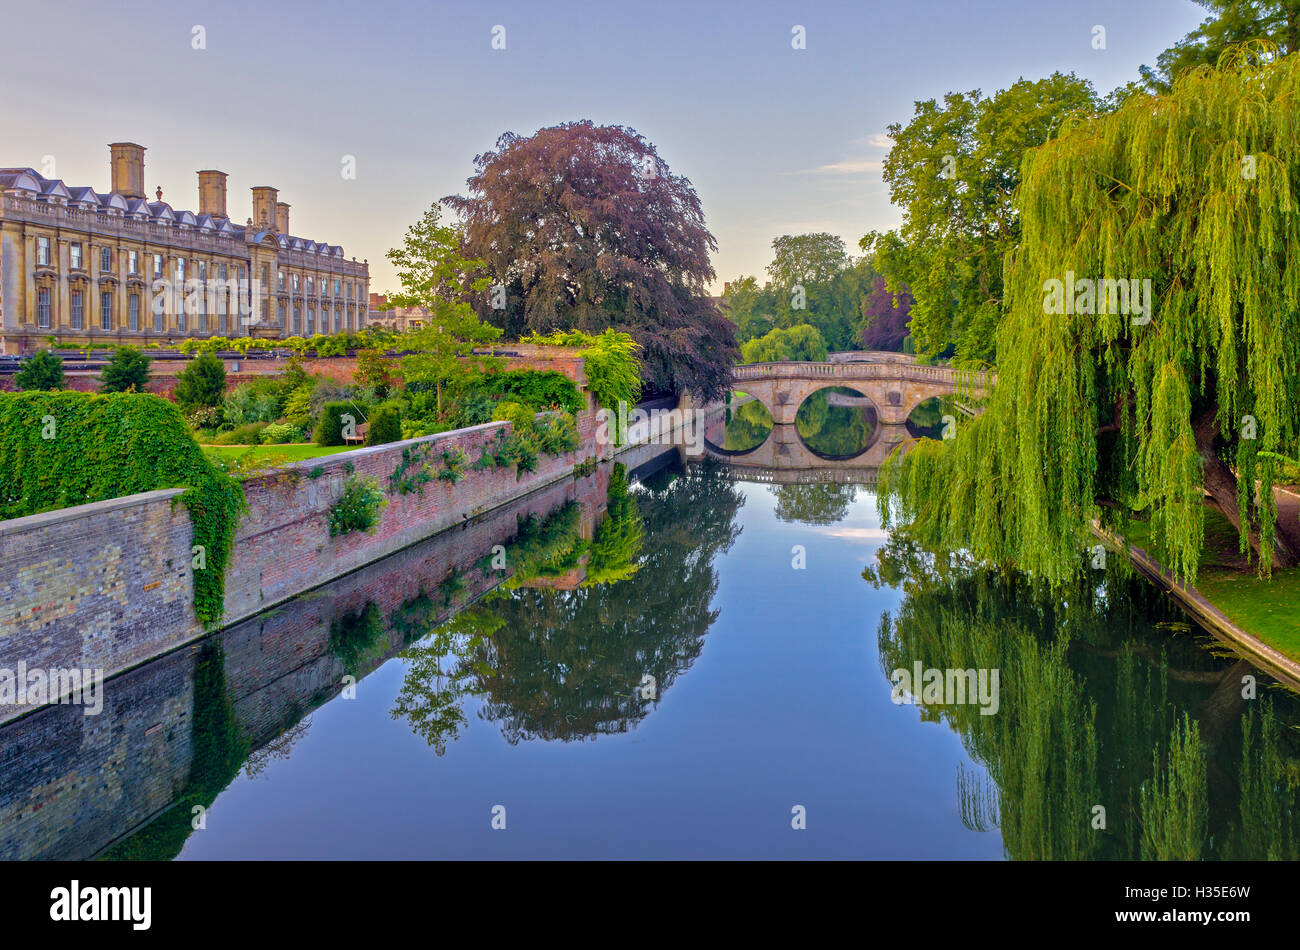 Clare and King's College Bridges over River Cam, The Backs, Cambridge, Cambridgeshire, England, UK - Stock Image